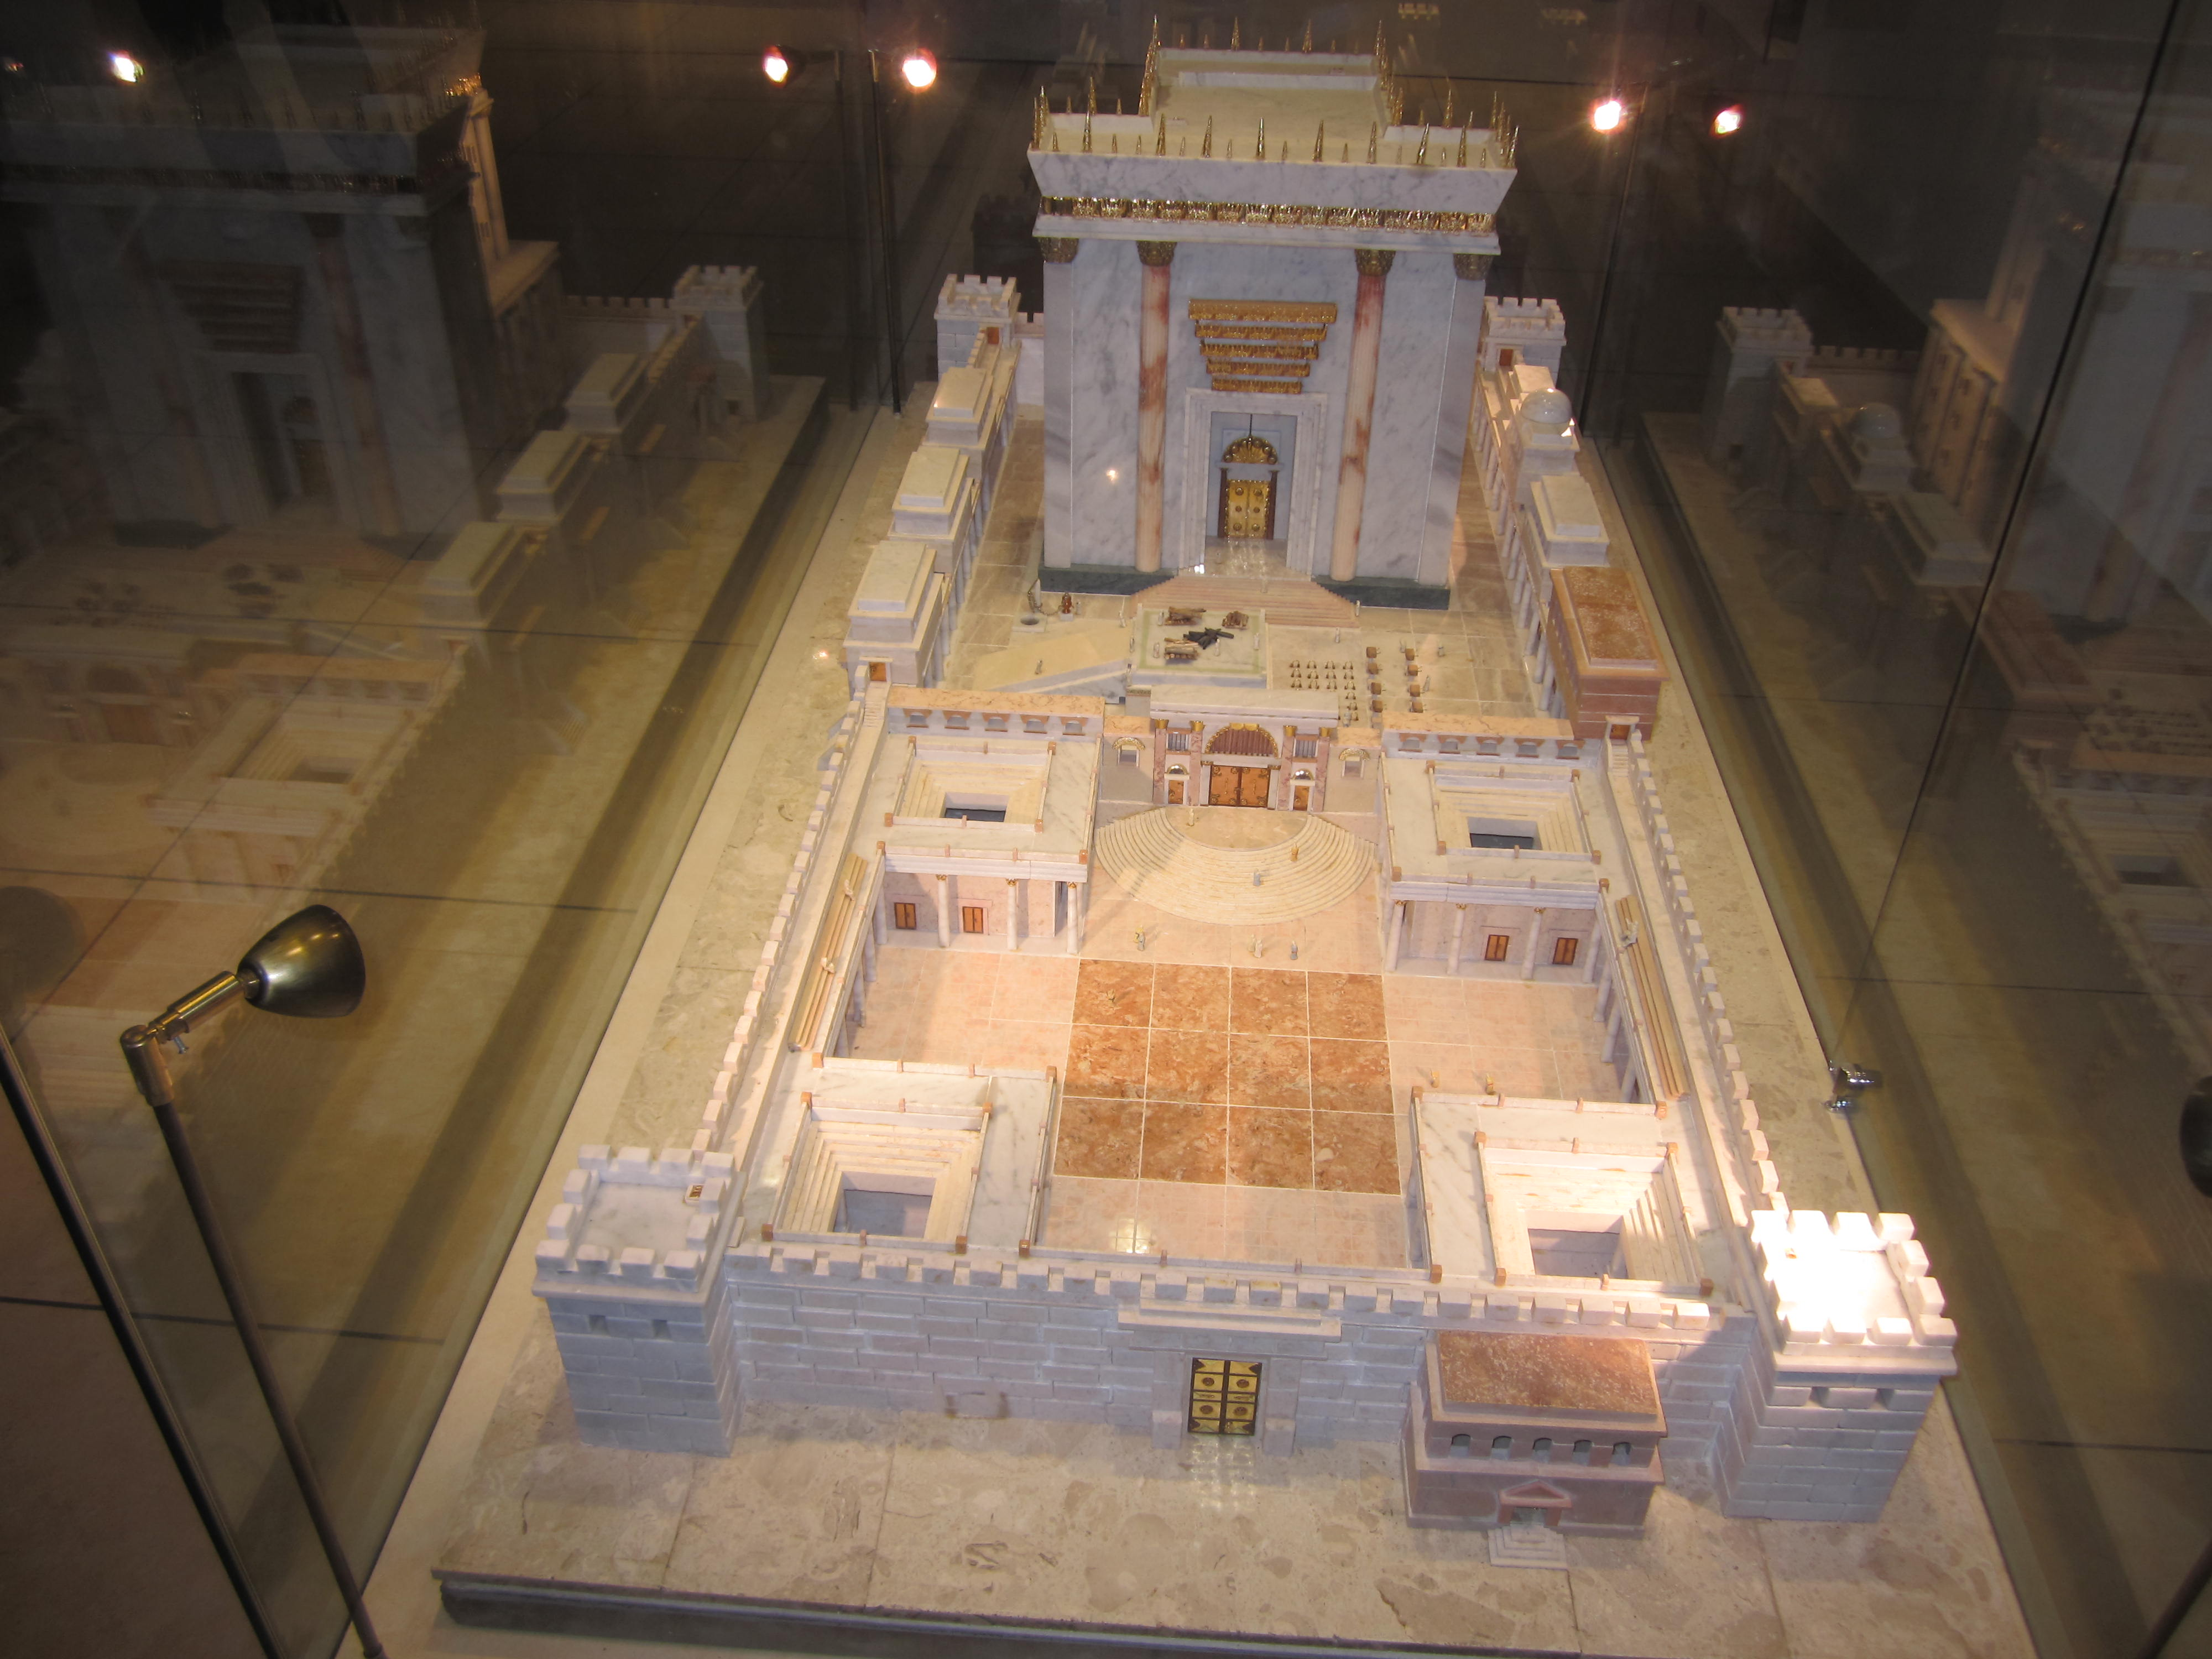 Holy work or troublemaking? Laying the groundwork for a Third Temple ...